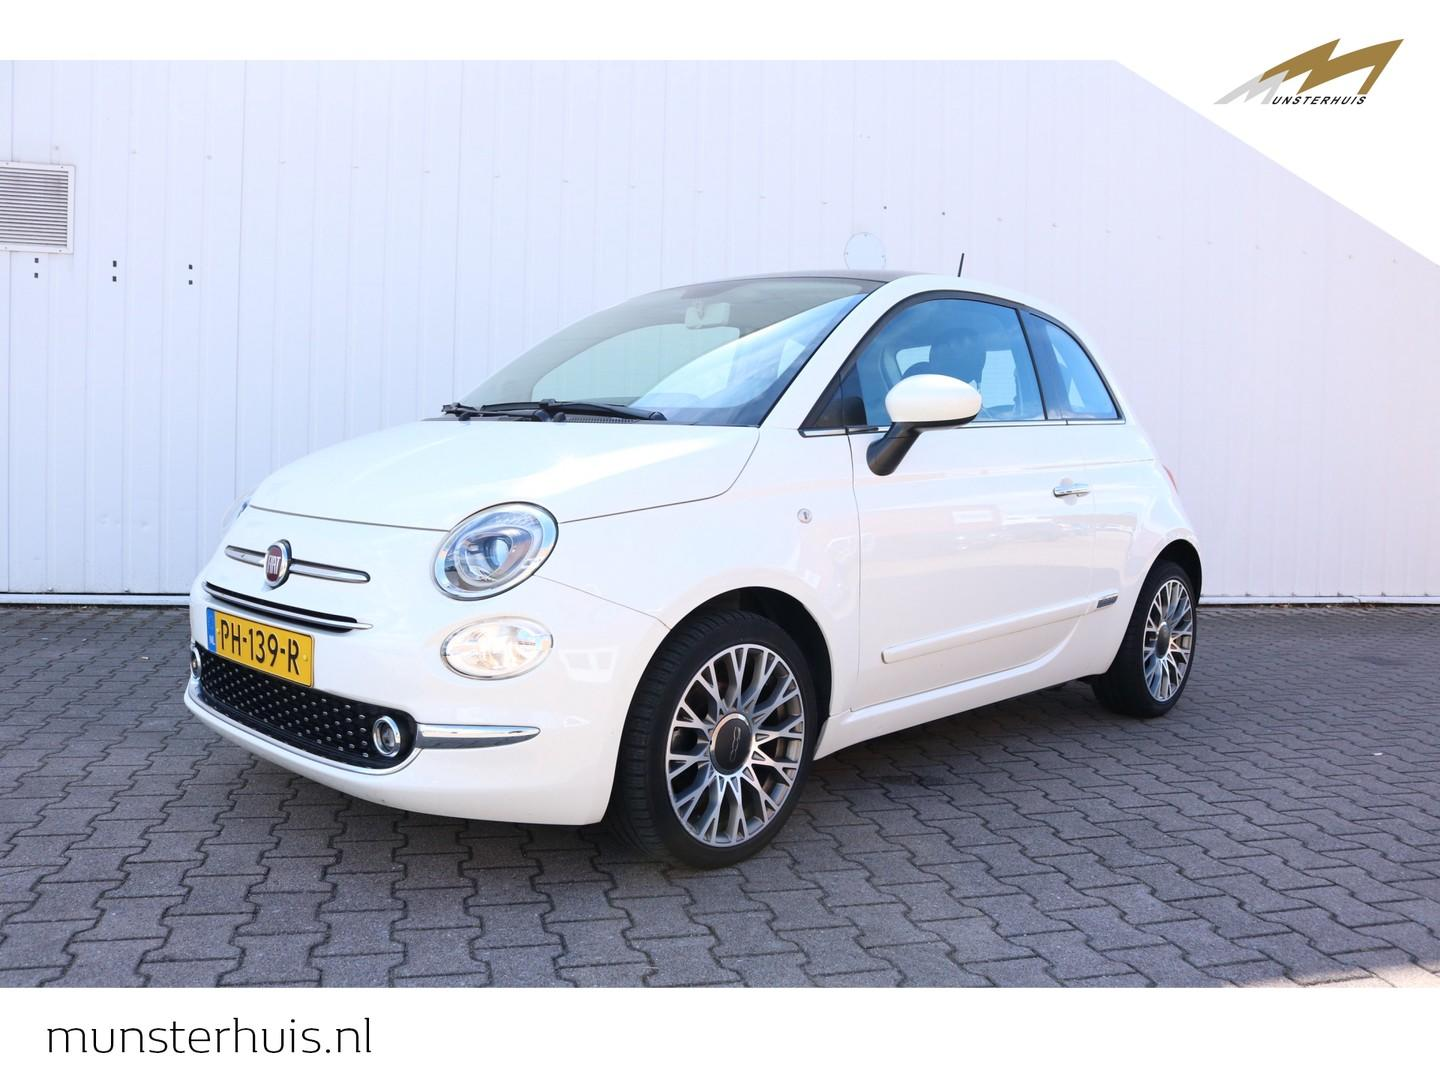 Fiat 500 Twinair turbo 80pk lounge - panoramadak